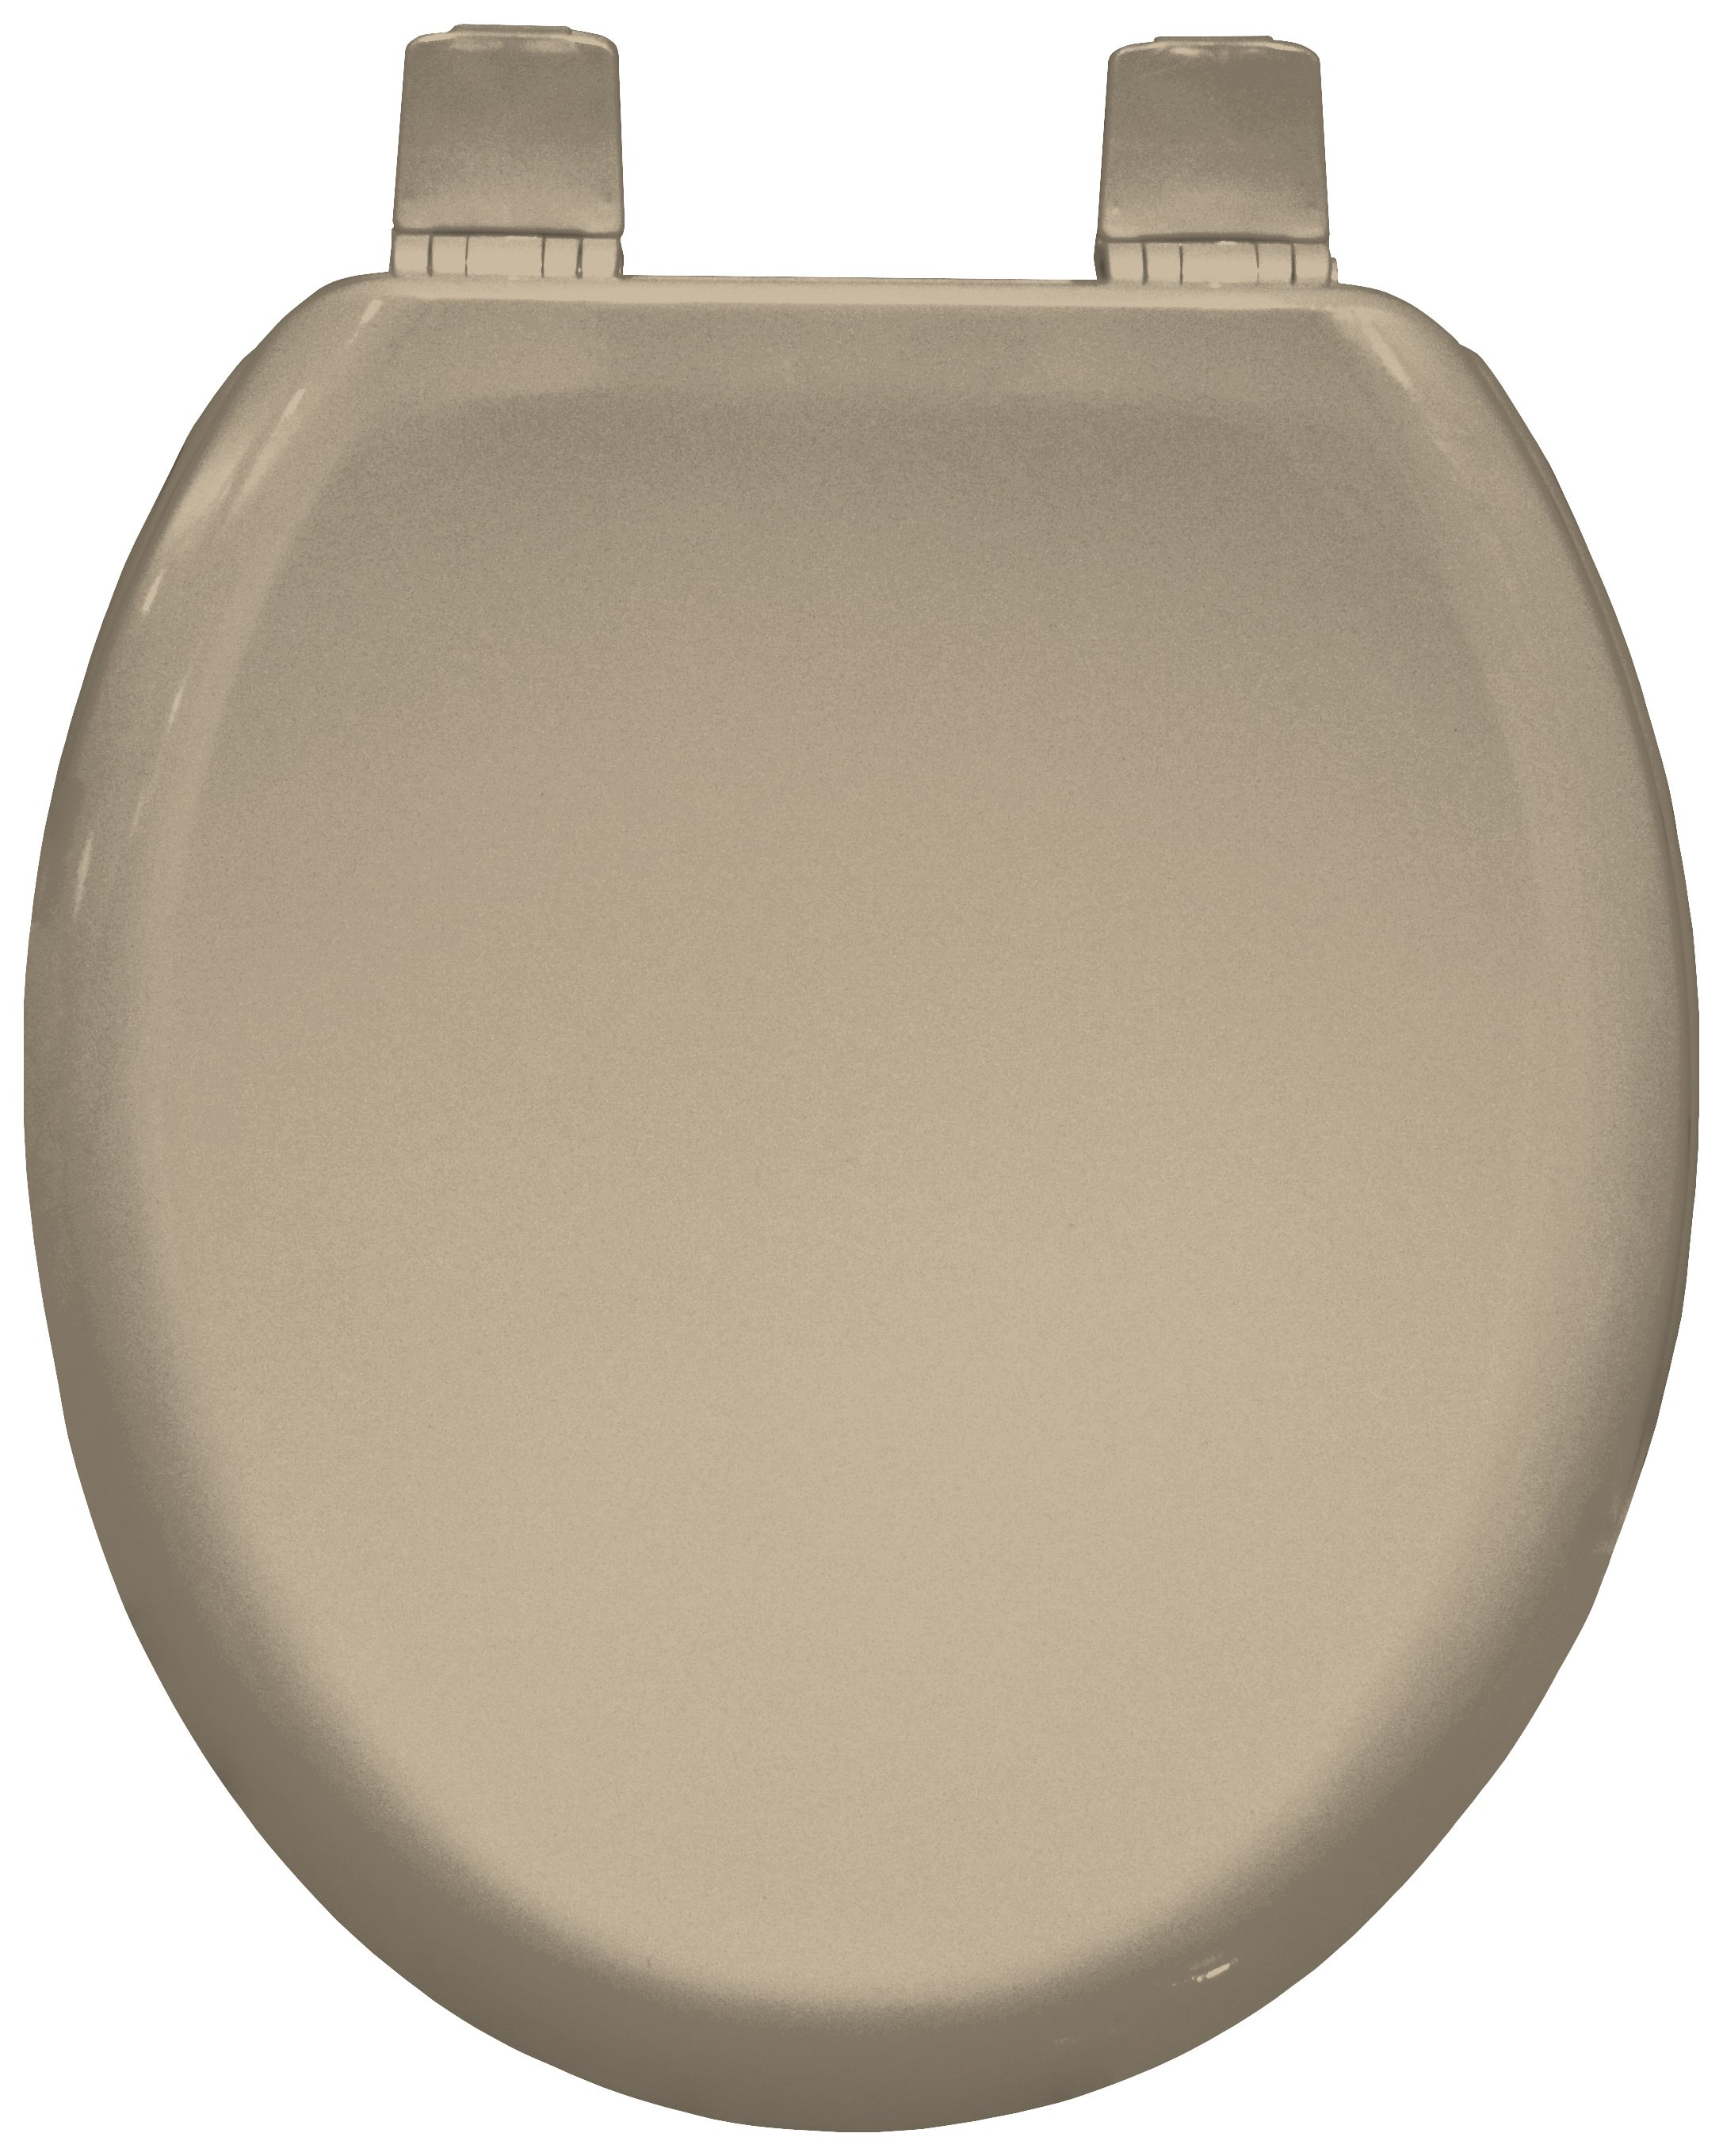 Image of Bemis - Chicago Moulded Wood - Toilet Seat - Indian Ivory